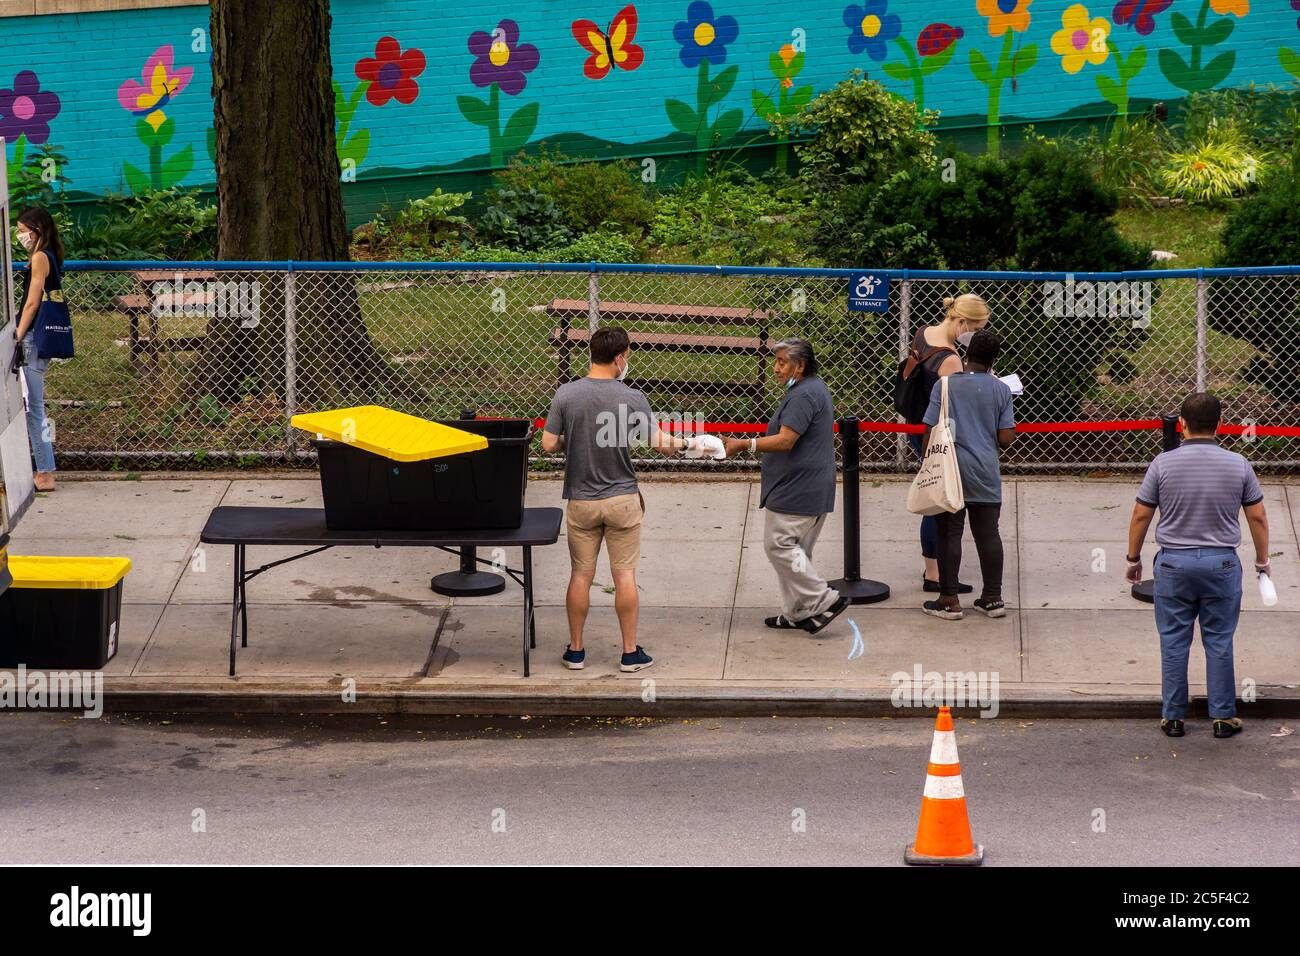 People in need line up for clothing and food at the Relief Bus social services in the Chelsea neighborhood of New York on Wednesday, July 1, 2020. (© Richard B. Levine) Stock Photo